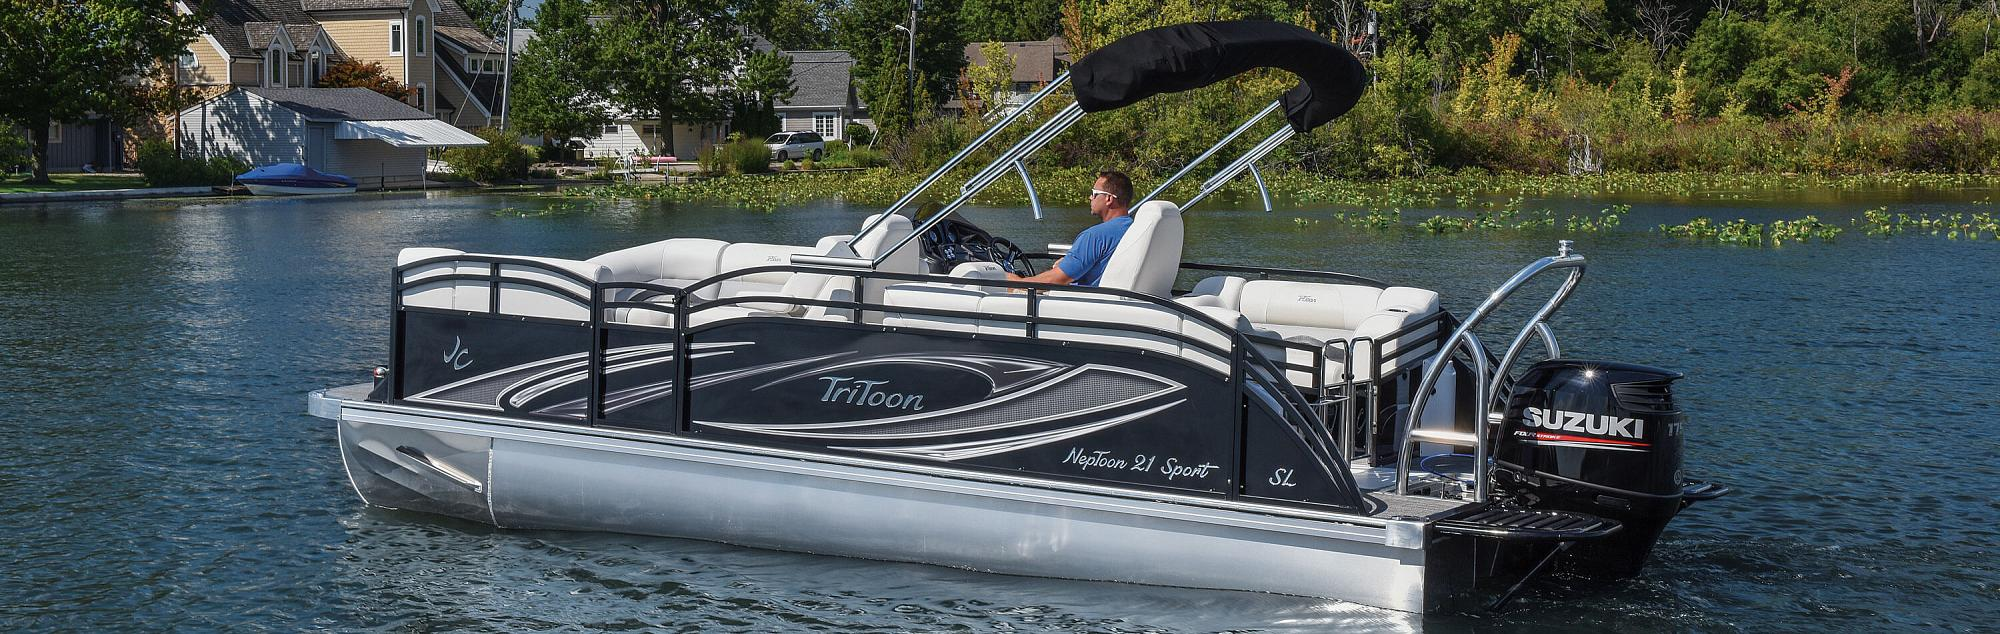 hight resolution of jc tritoon marine pontoon boat quality